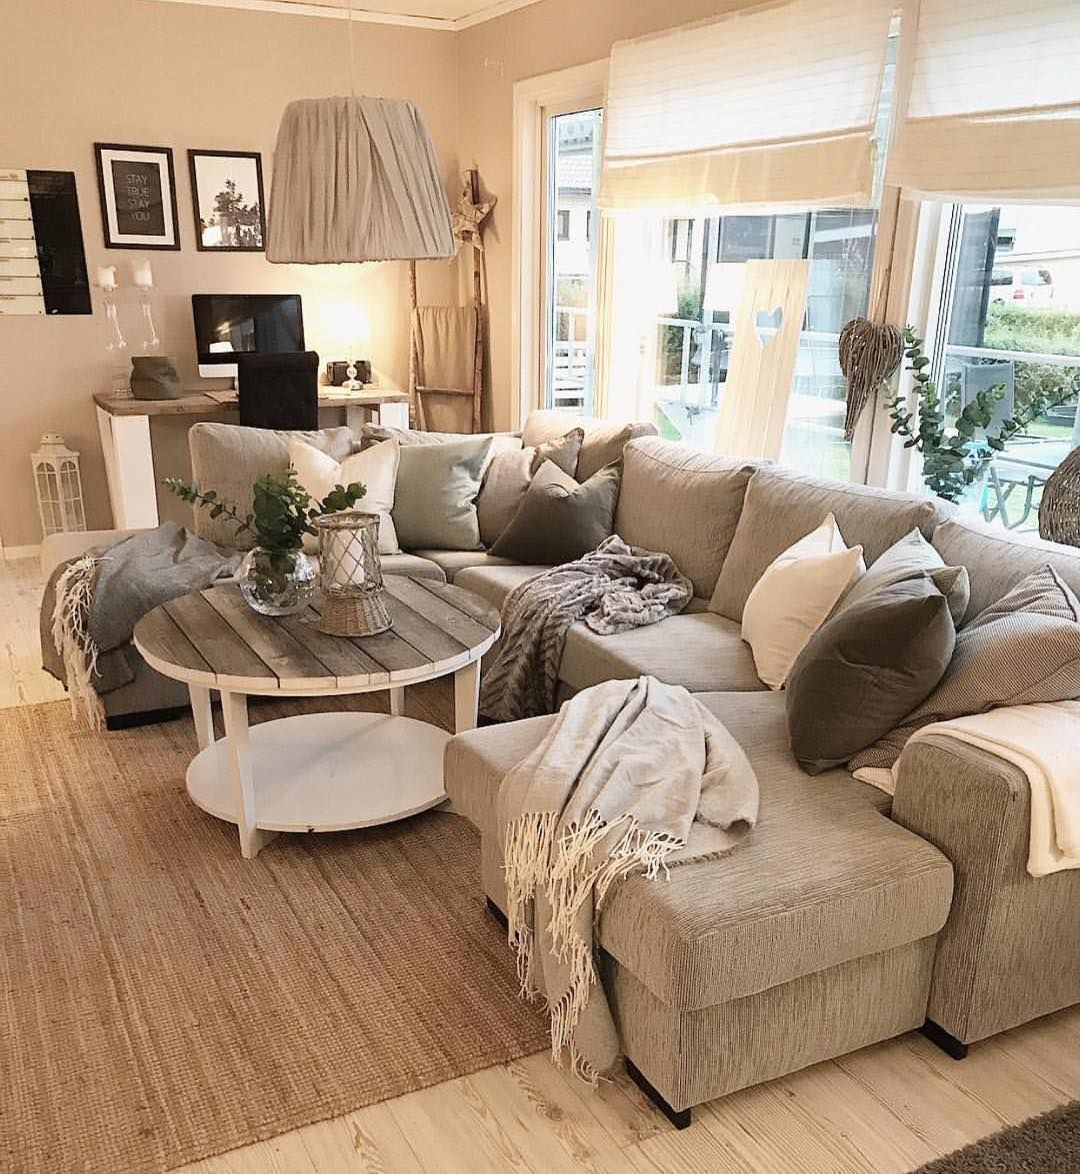 10 Comfortable And Cozy Living Rooms Ideas You Must Check Hoomble Farmhouse Decor Living Room Cosy Living Room Winter Living Room Decor